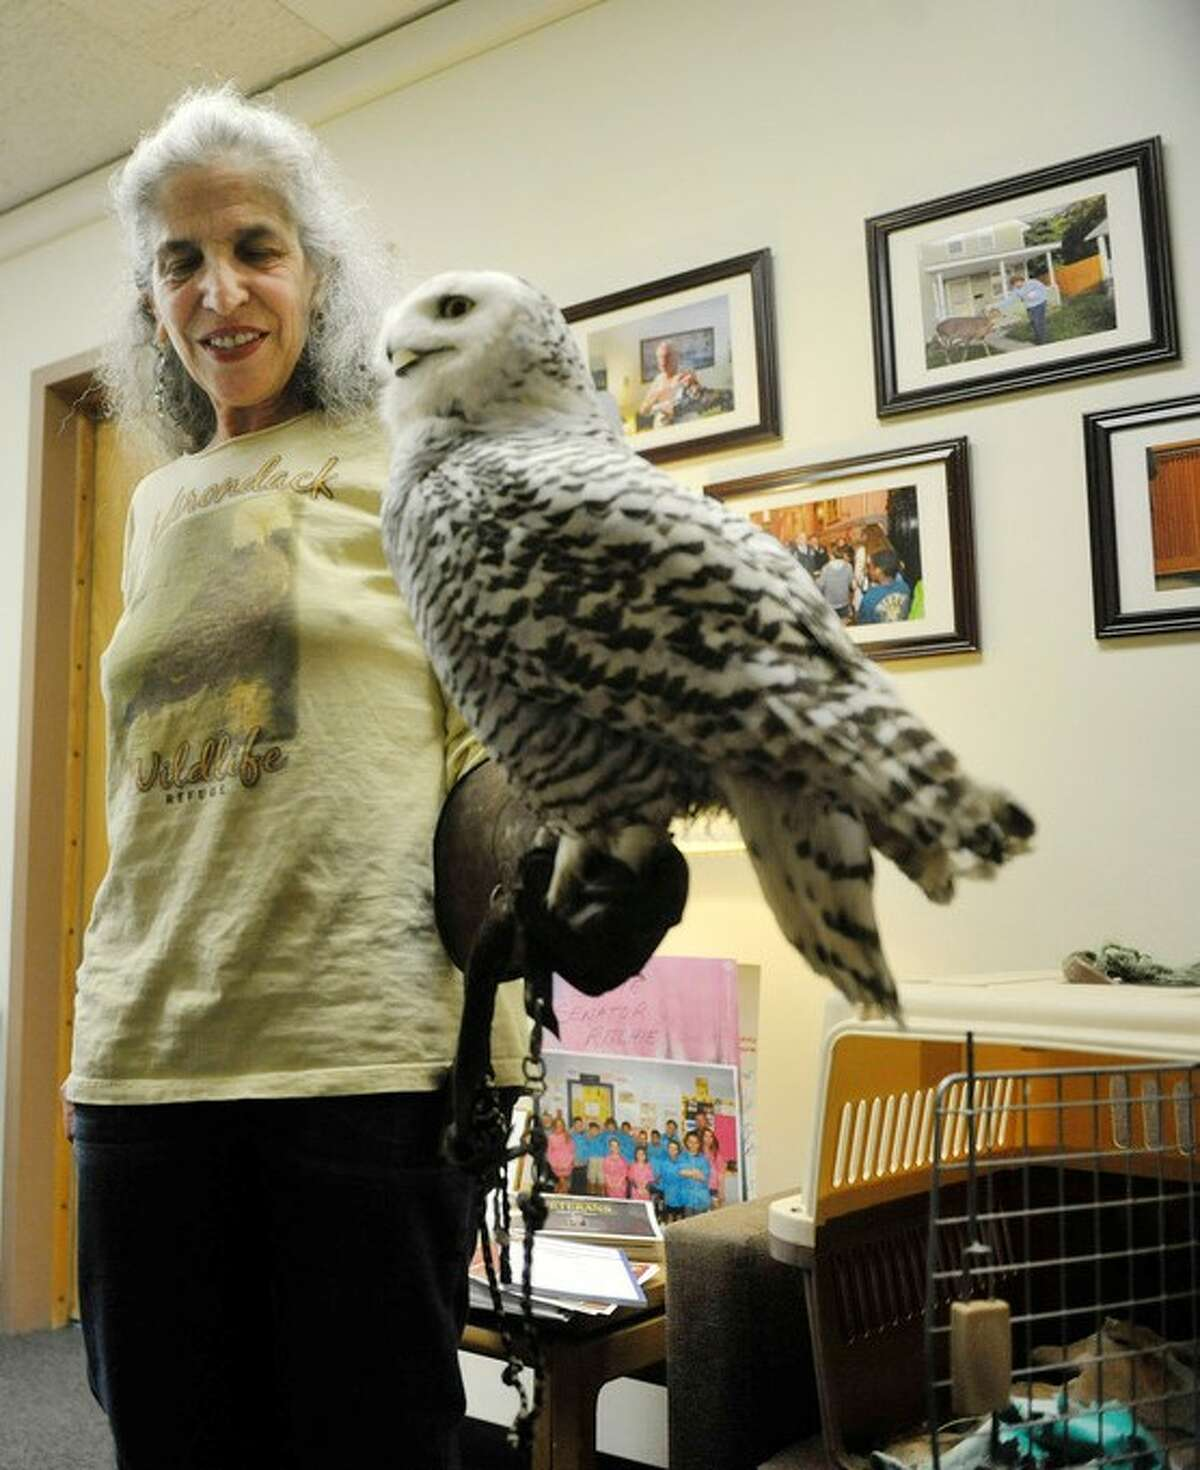 Wendy Hall of the Adirondack Wildlife Refuge and Rehab Center in Wilmington, holding snowy owl Cara, at the Legislative Office Building in Albany, N.Y. in 2015. Hall has surrendered two of her remaining wildlife licenses that the state planned to revoke after years of alleged deceptive and improper reporting about the Wilmington animal farm.